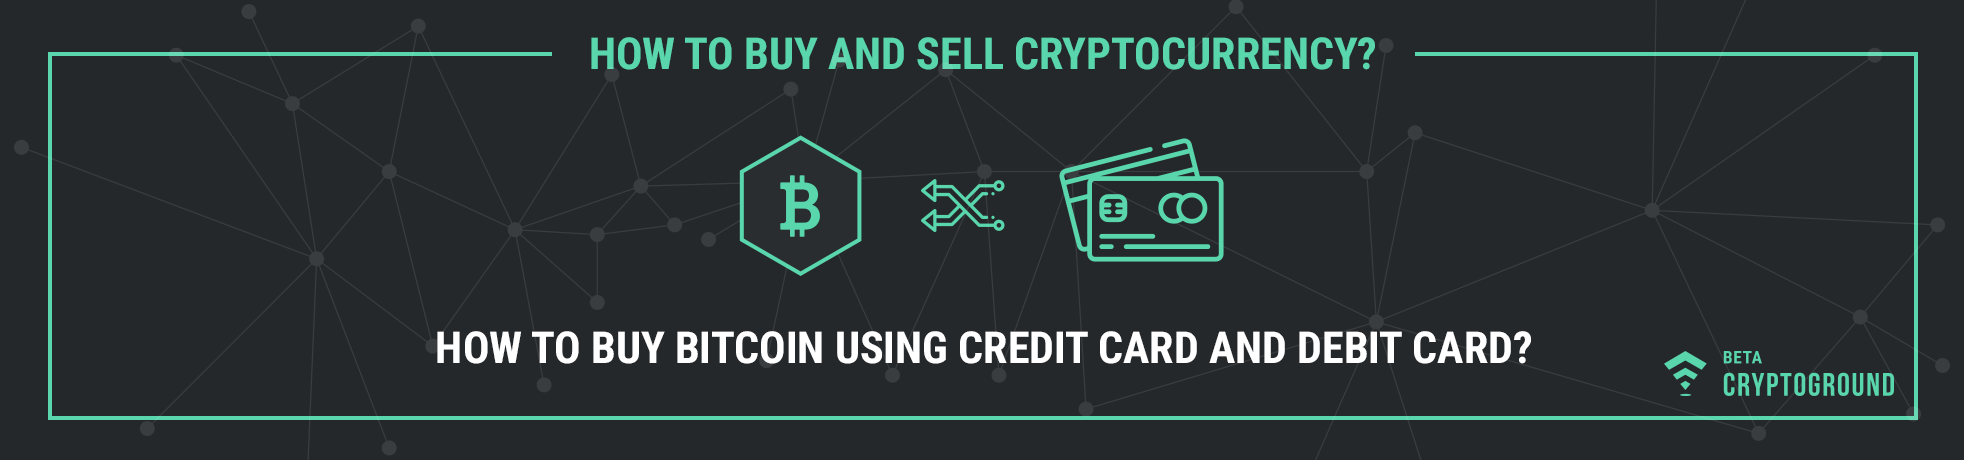 How To Buy Bitcoin Using Credit Card and Debit Card?